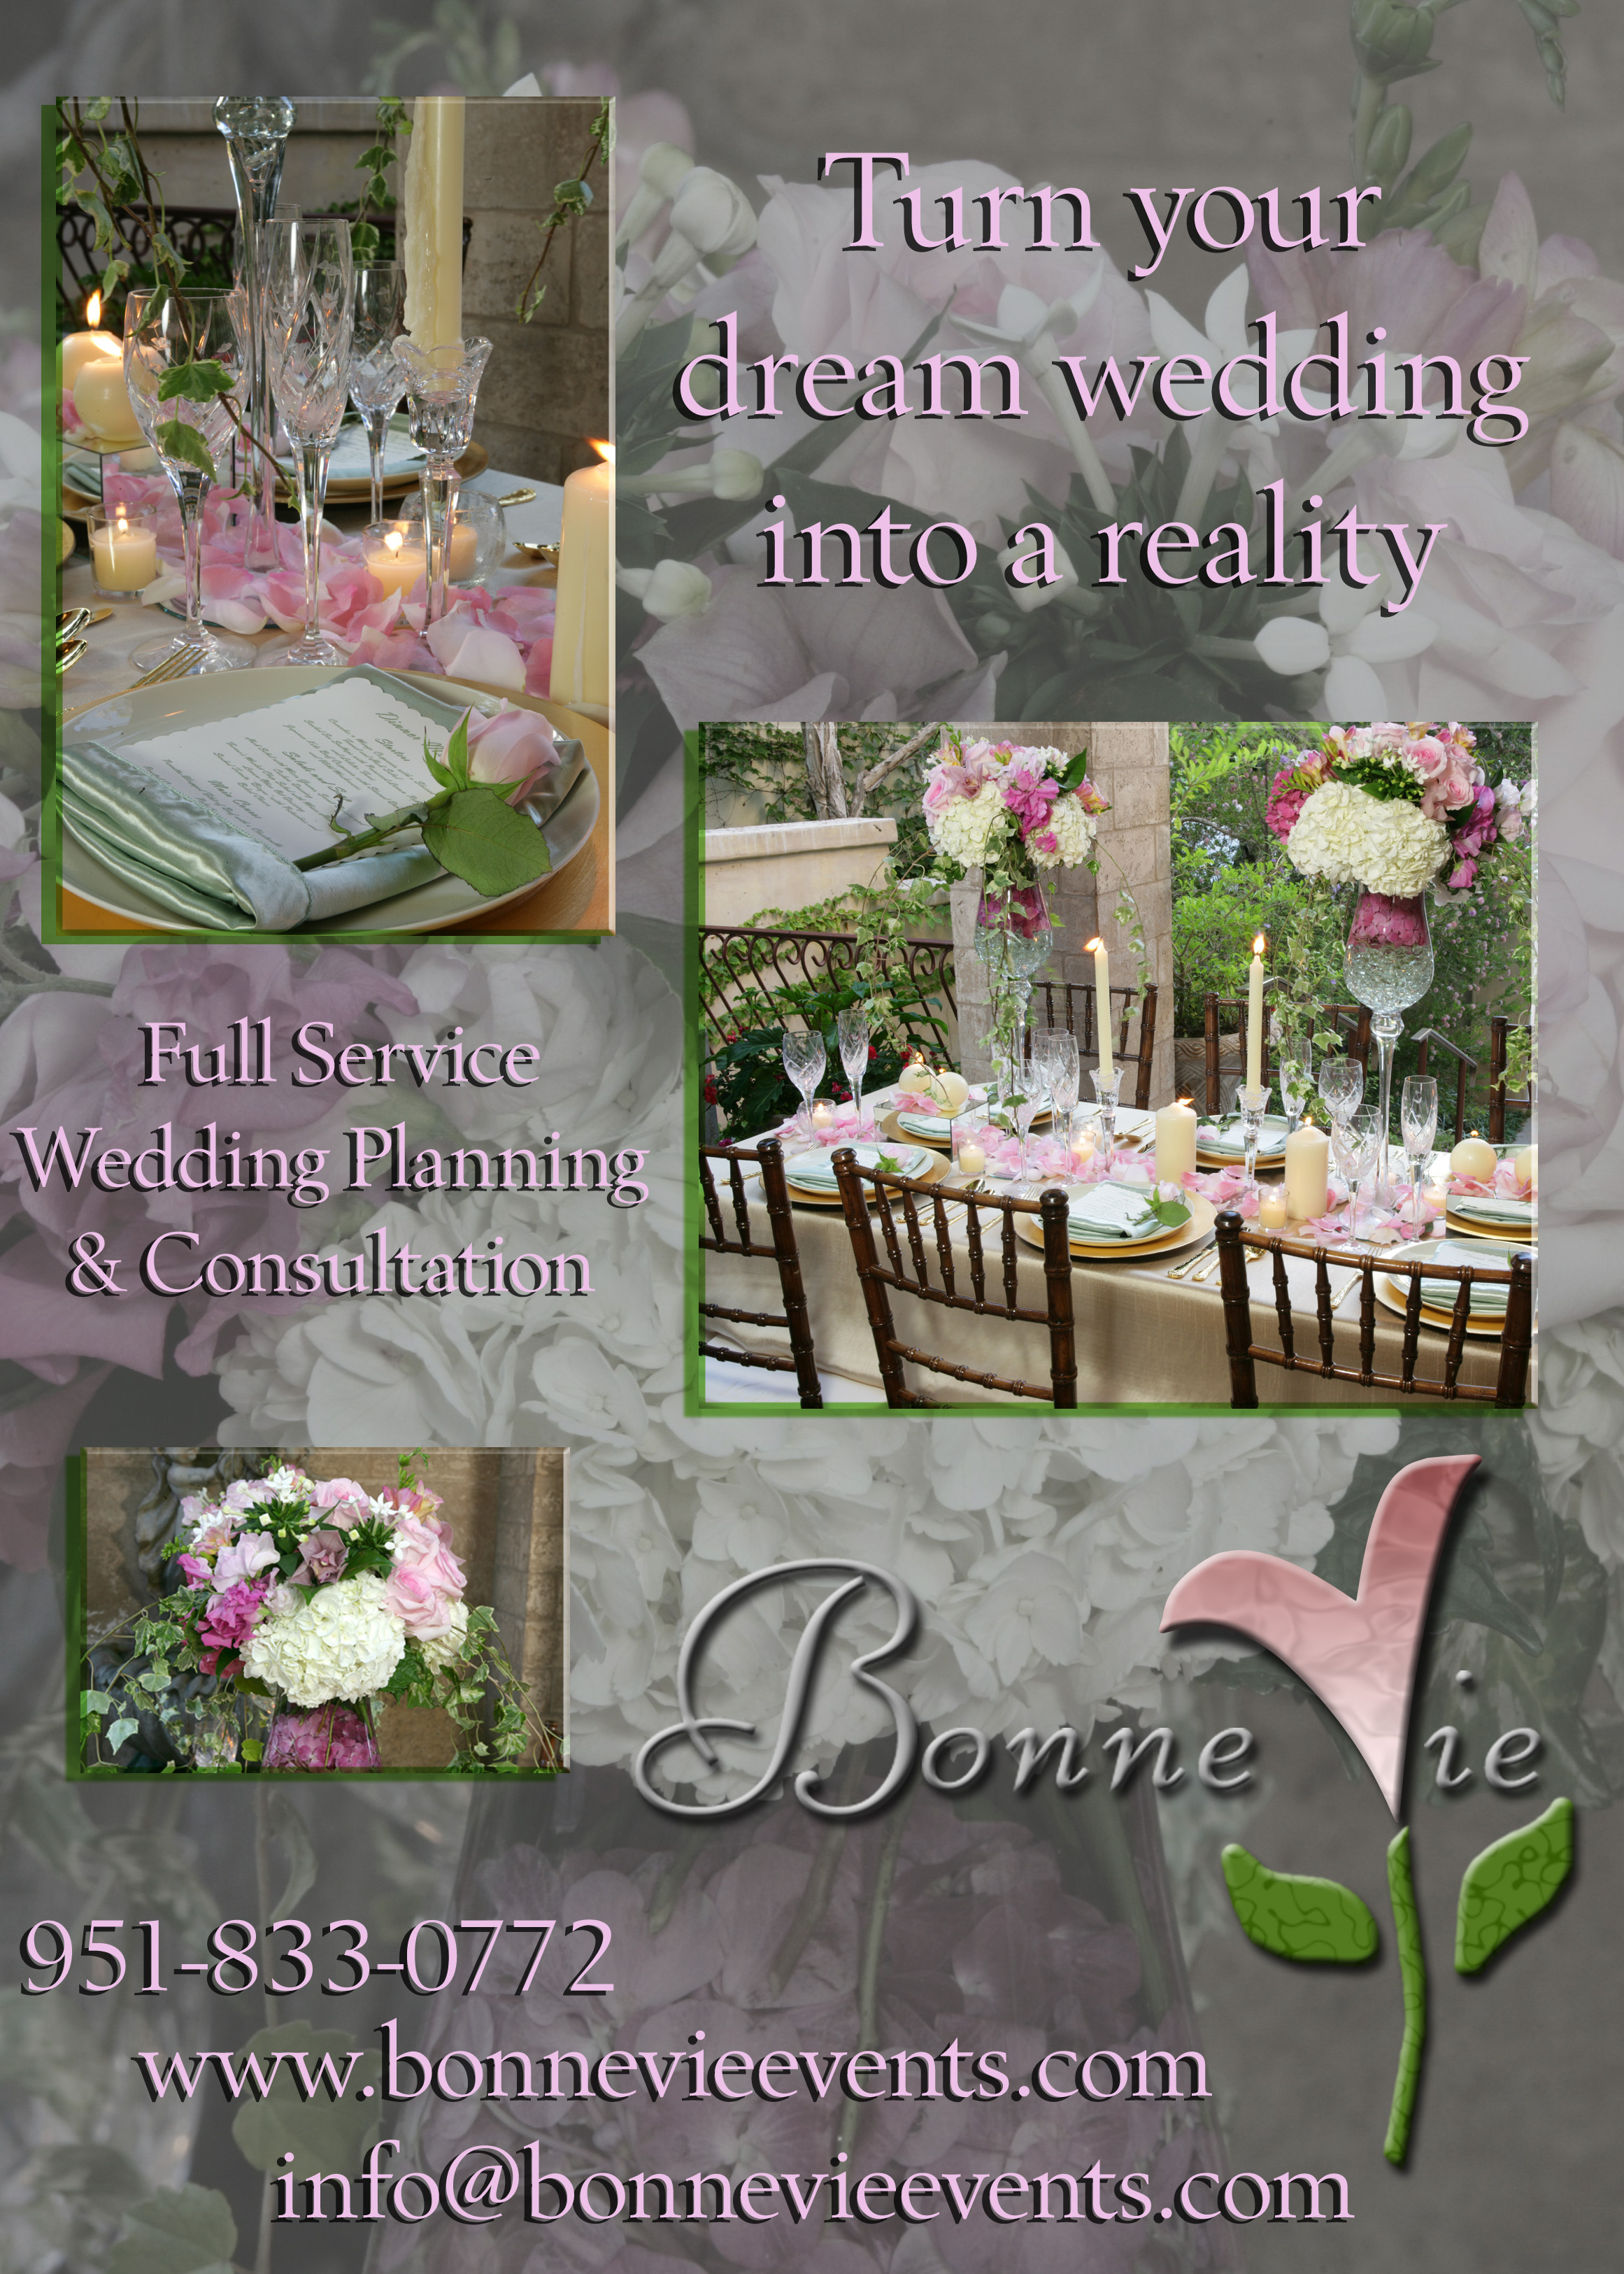 Planning, Wedding, Coordinator, Planners, Bonne vie event design